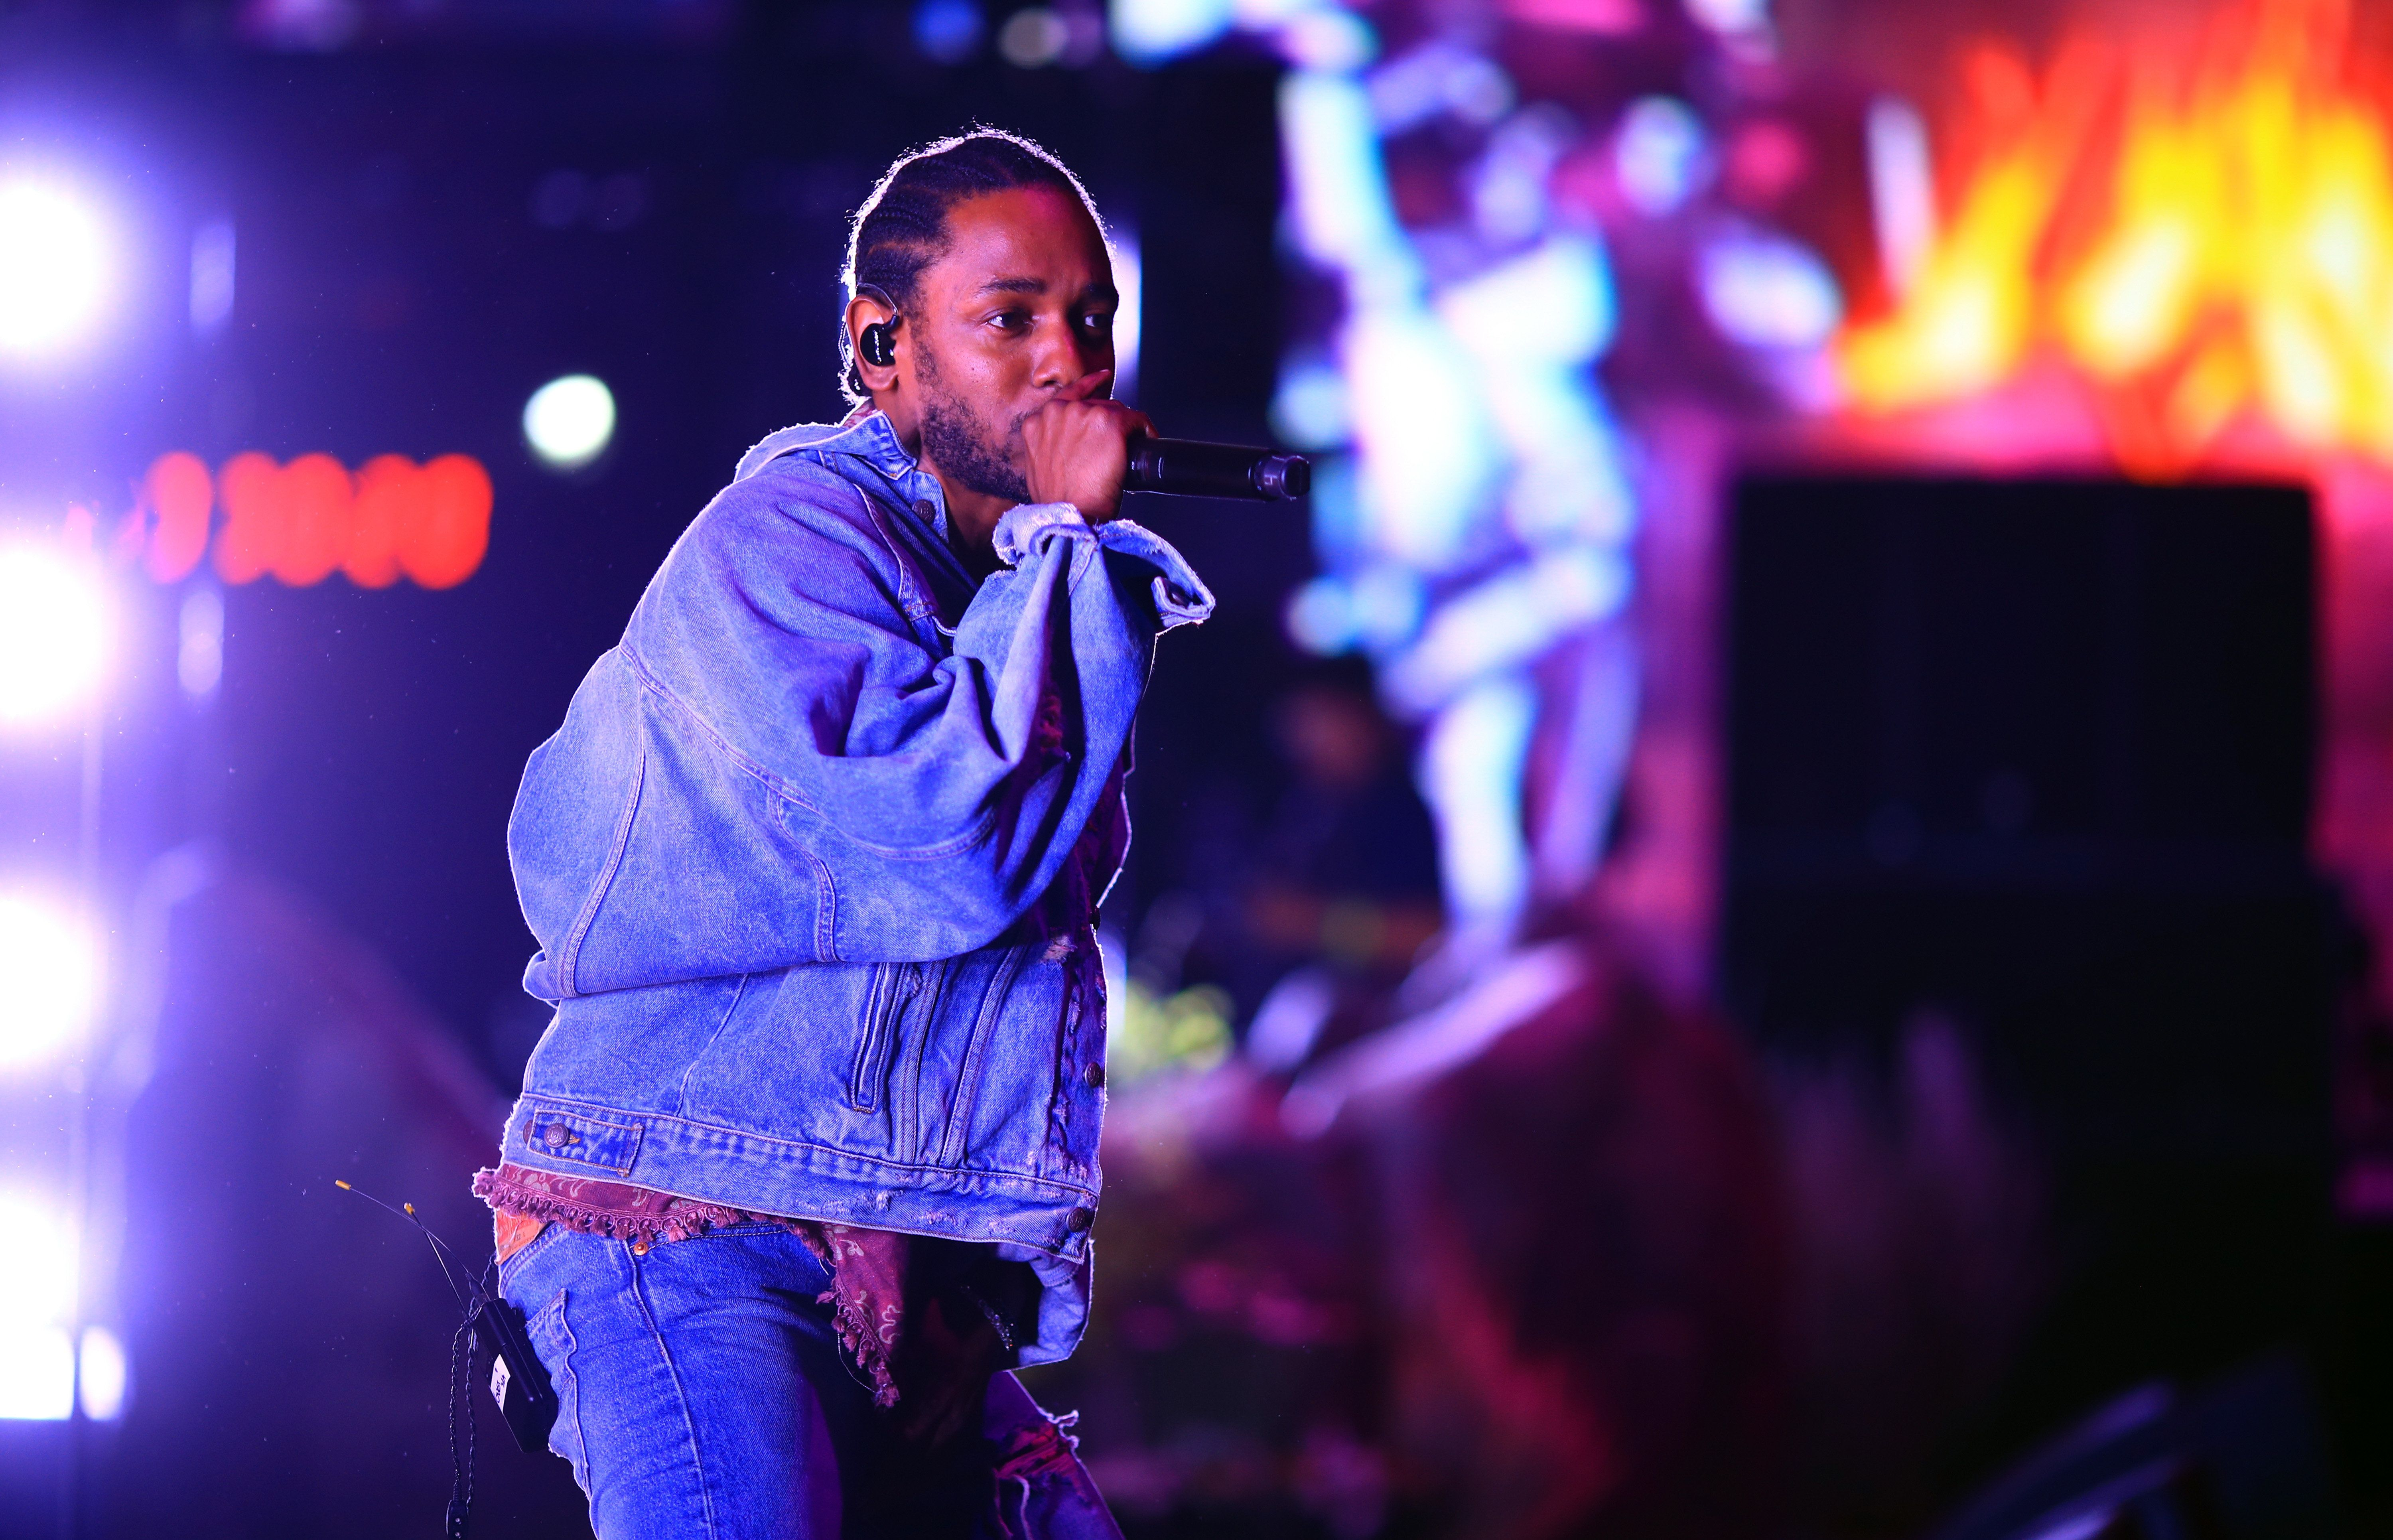 Kendrick performed at Coachella over the weekend